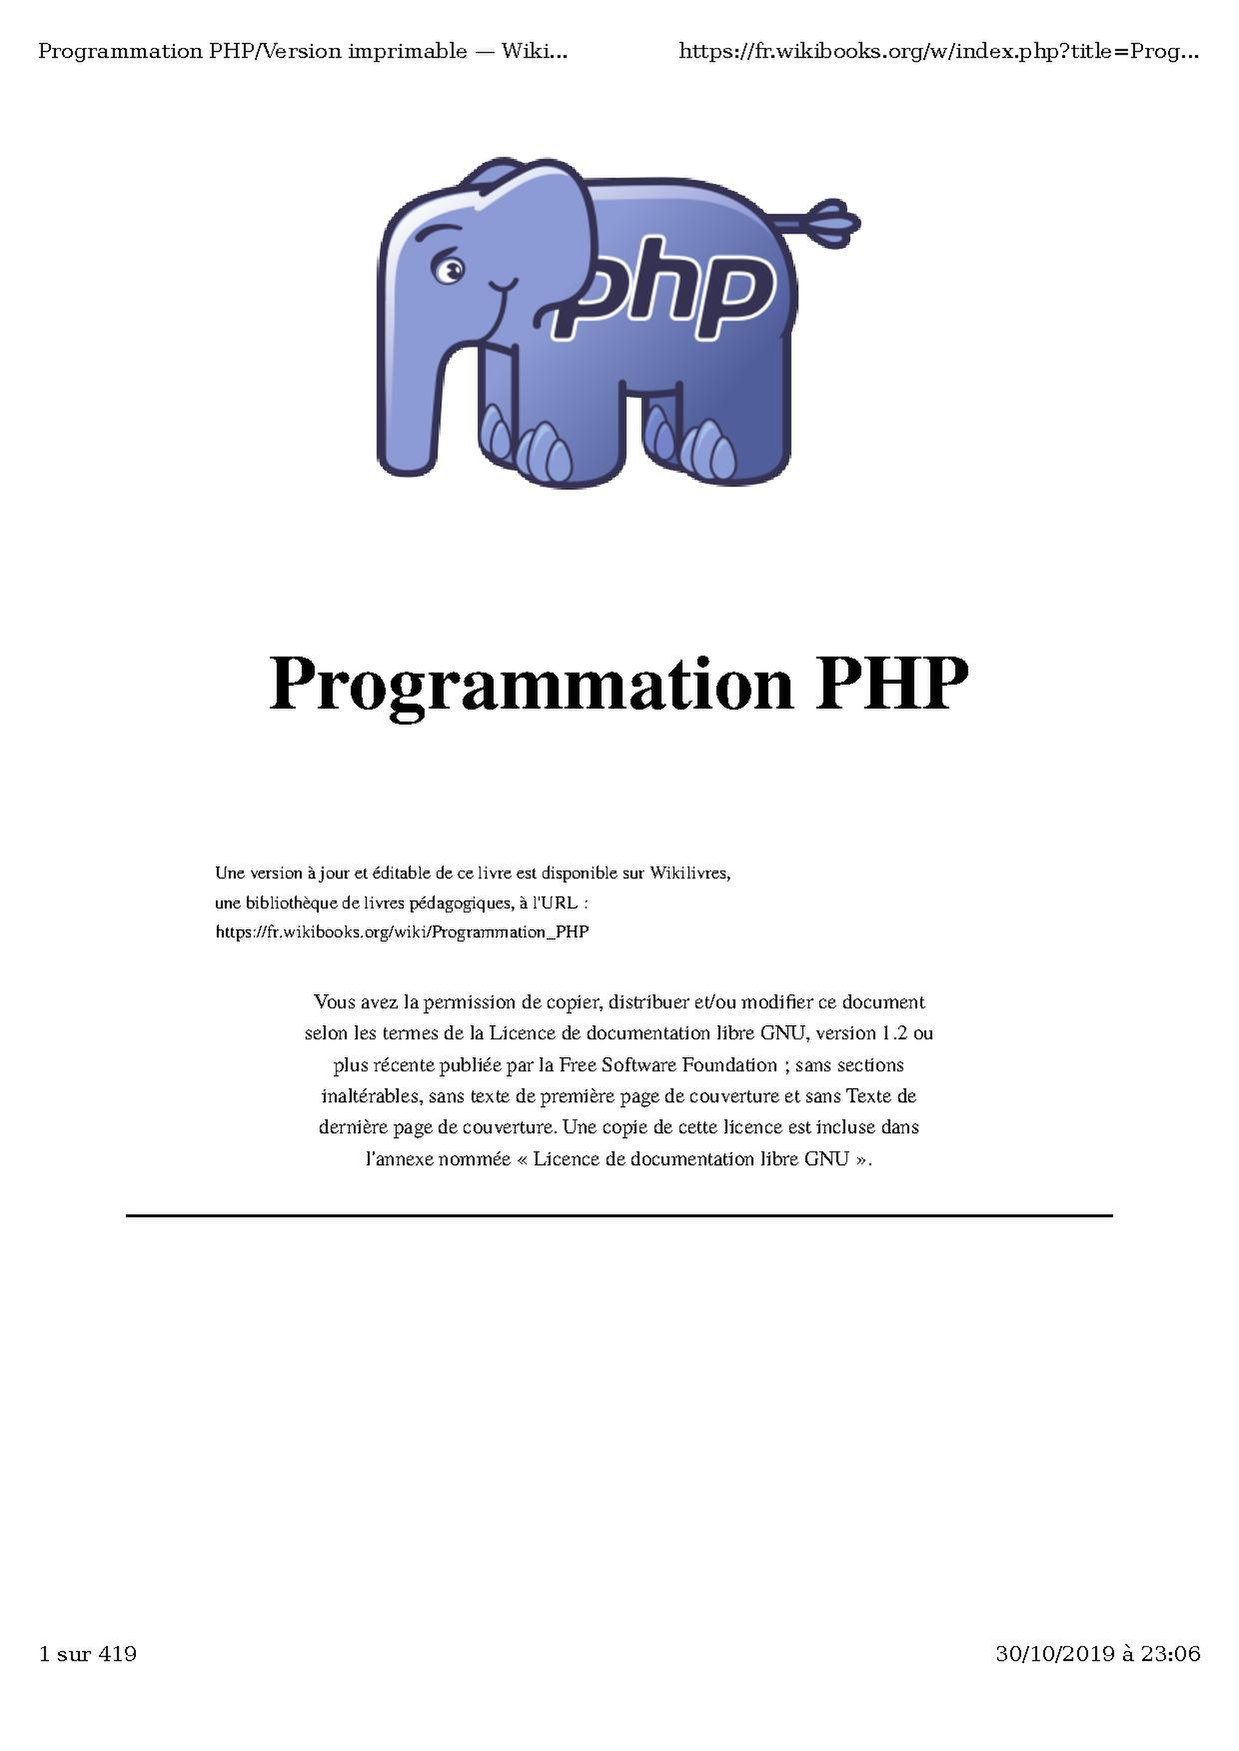 Pdf From Url Php